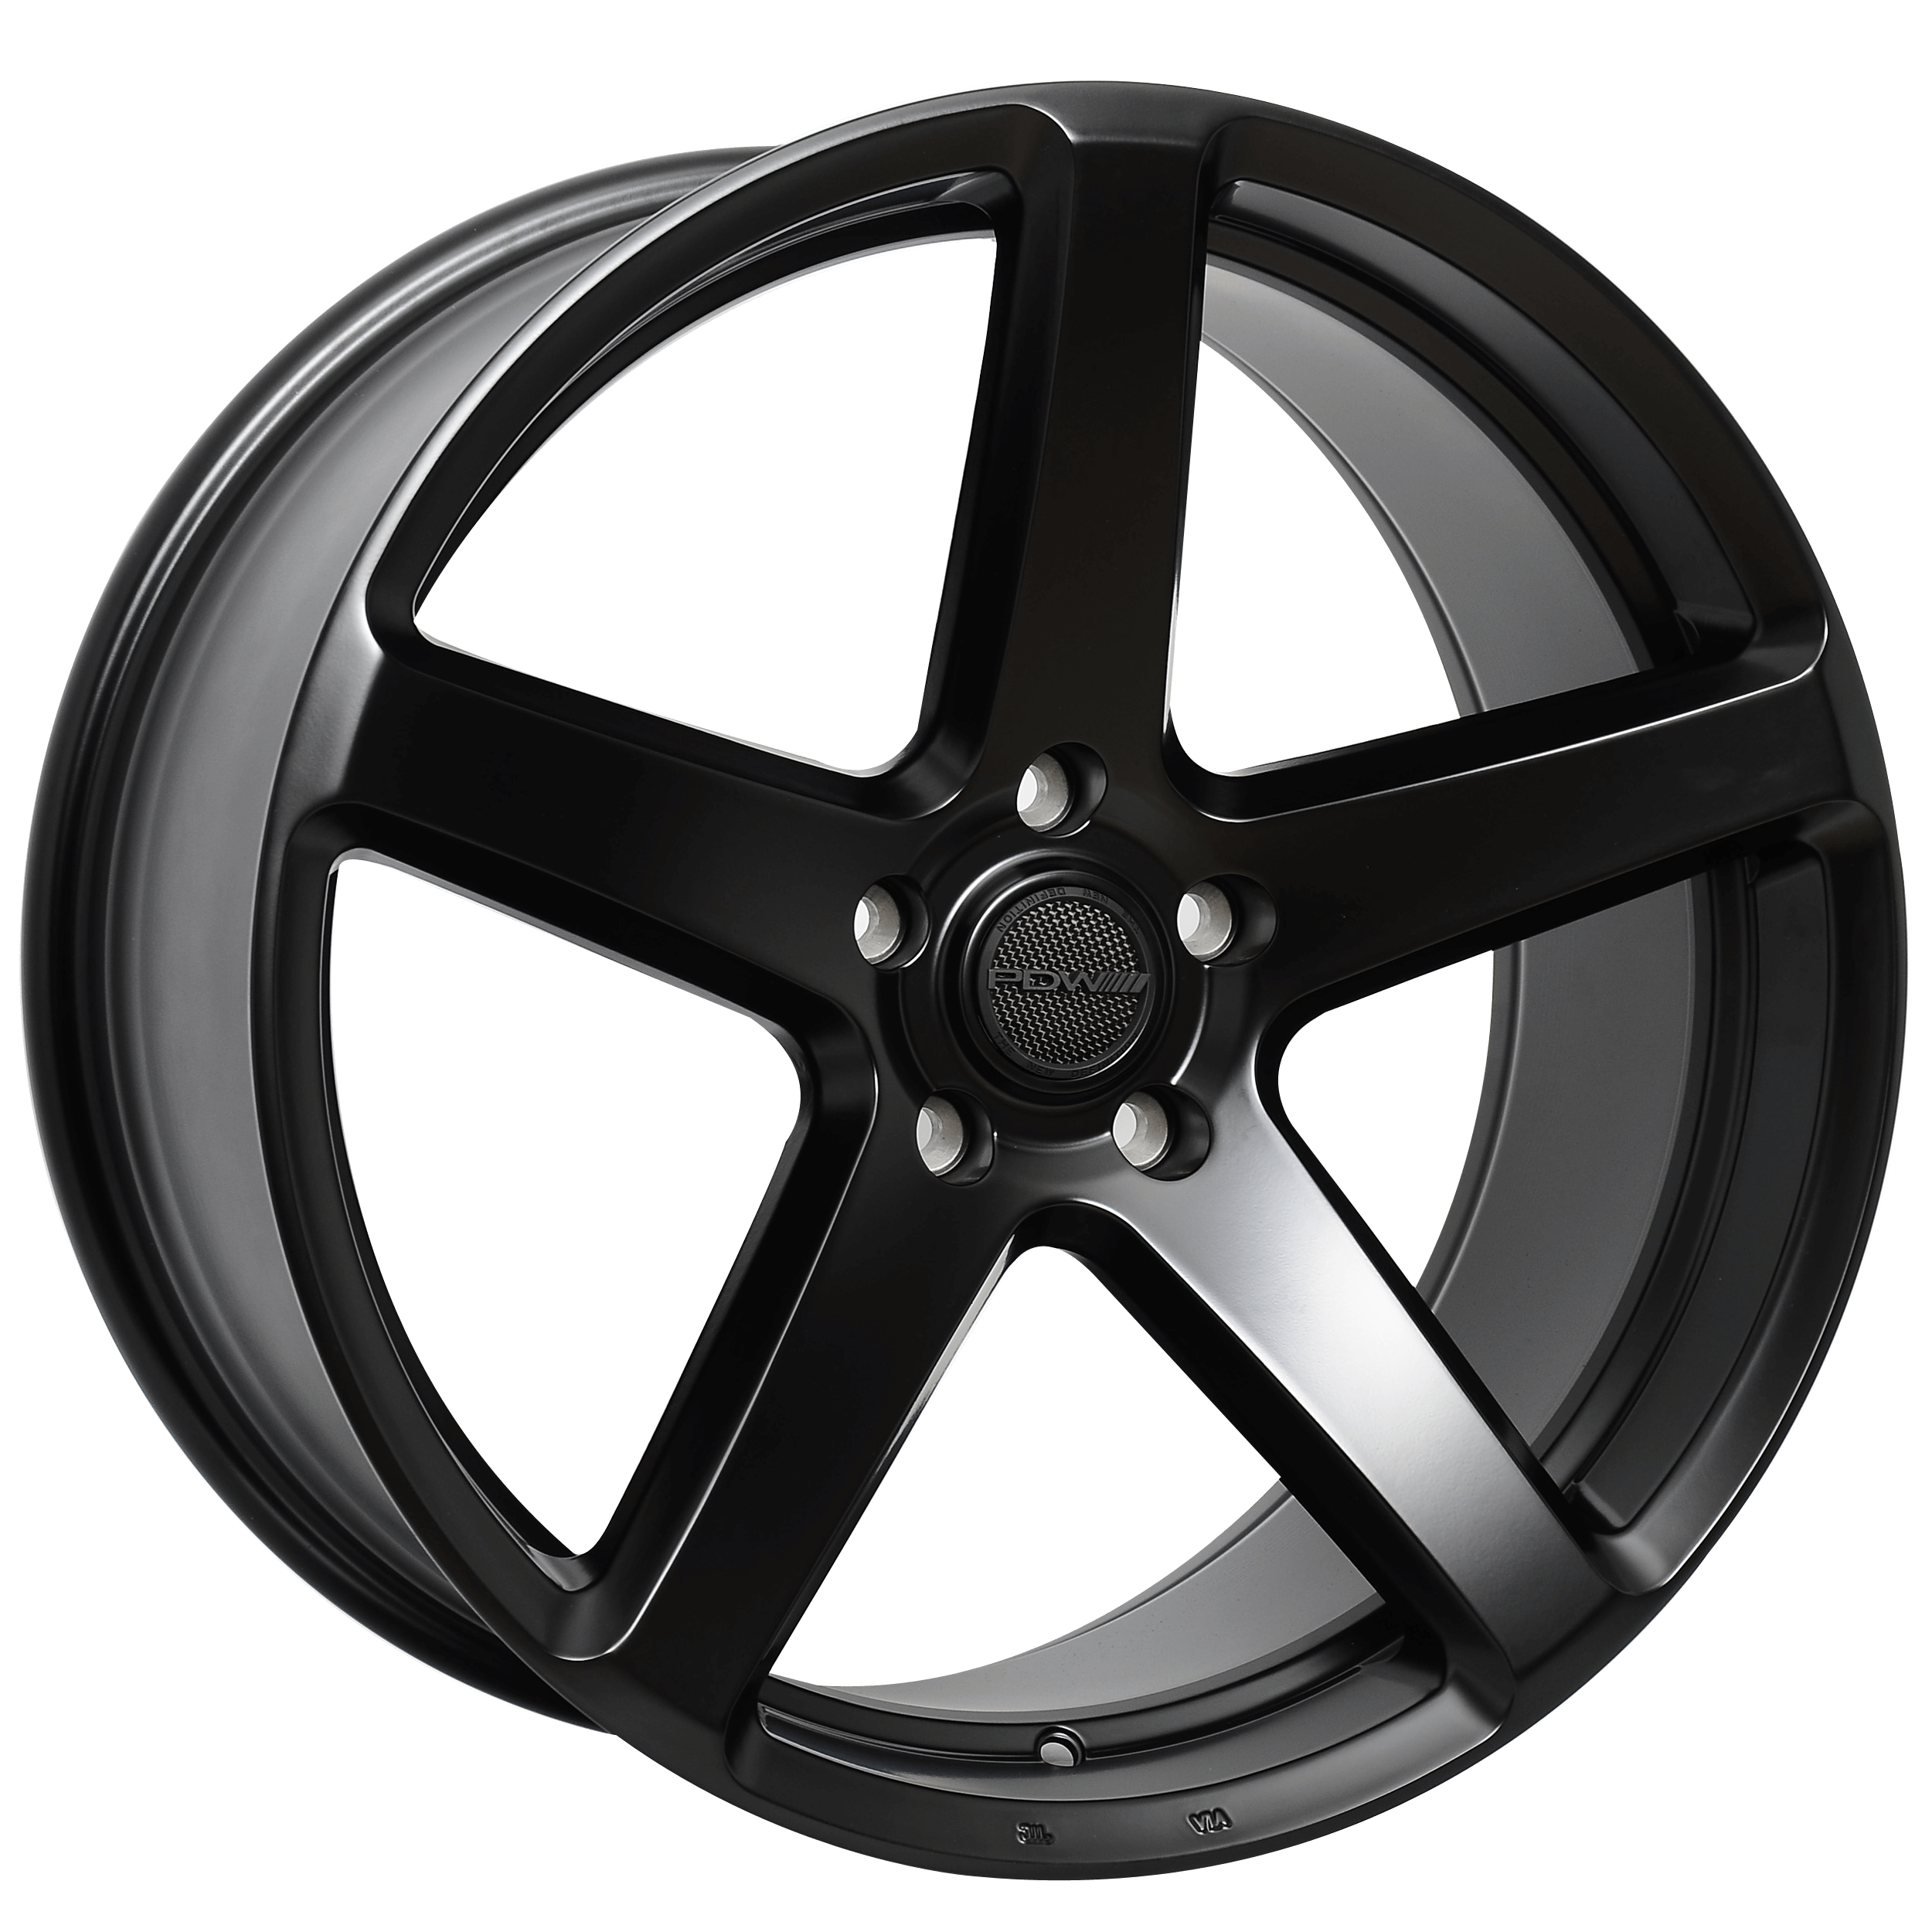 Adventus Forged Wheels Small also Gear Alloy Wheels Small besides Merceli Wheels Small together with Moto Metal Wheels Small besides Mamba Wheels Small. on staggered rims definition